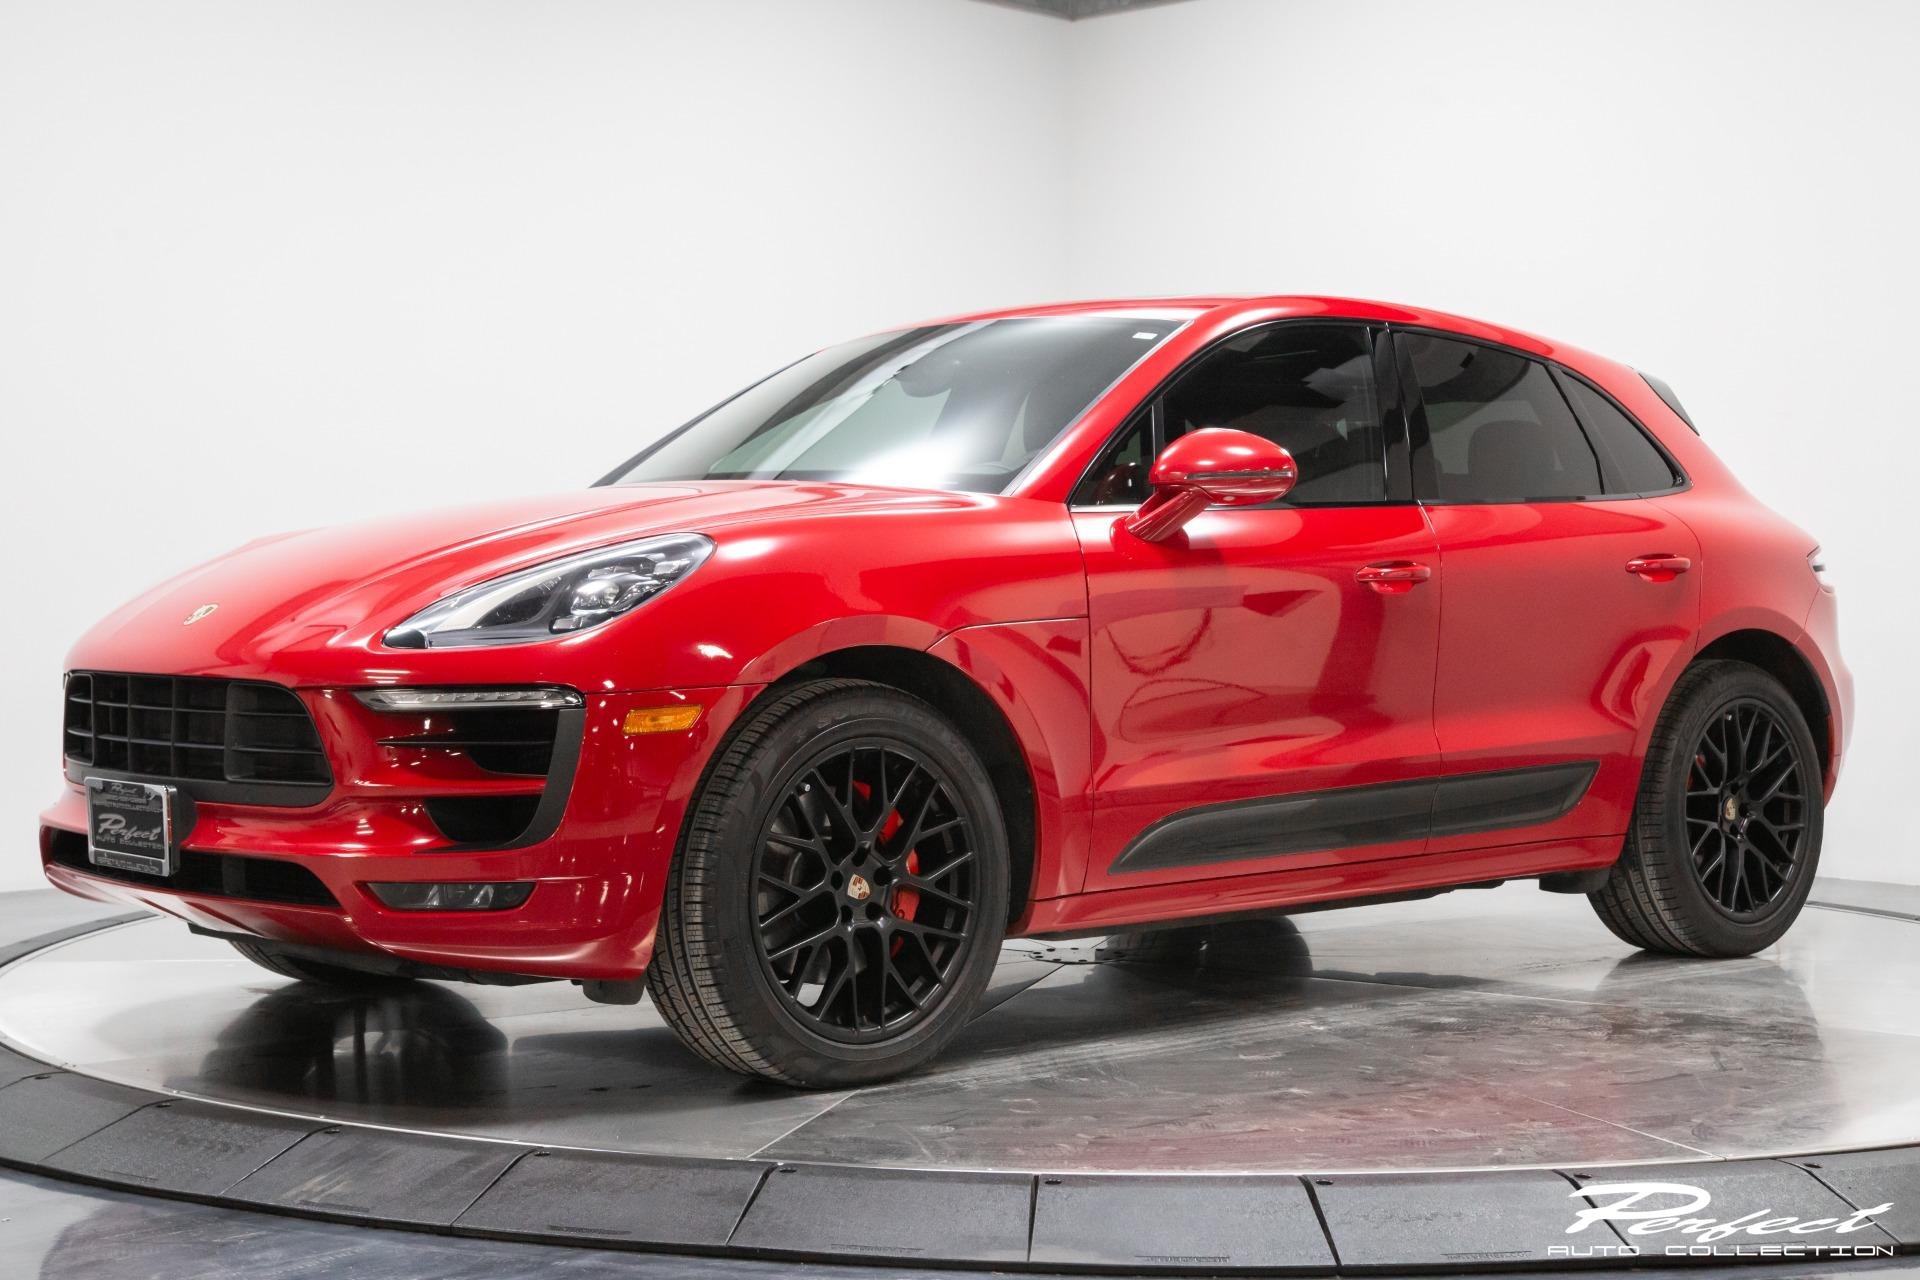 Used 2017 Porsche Macan GTS for sale Sold at Perfect Auto Collection in Akron OH 44310 1